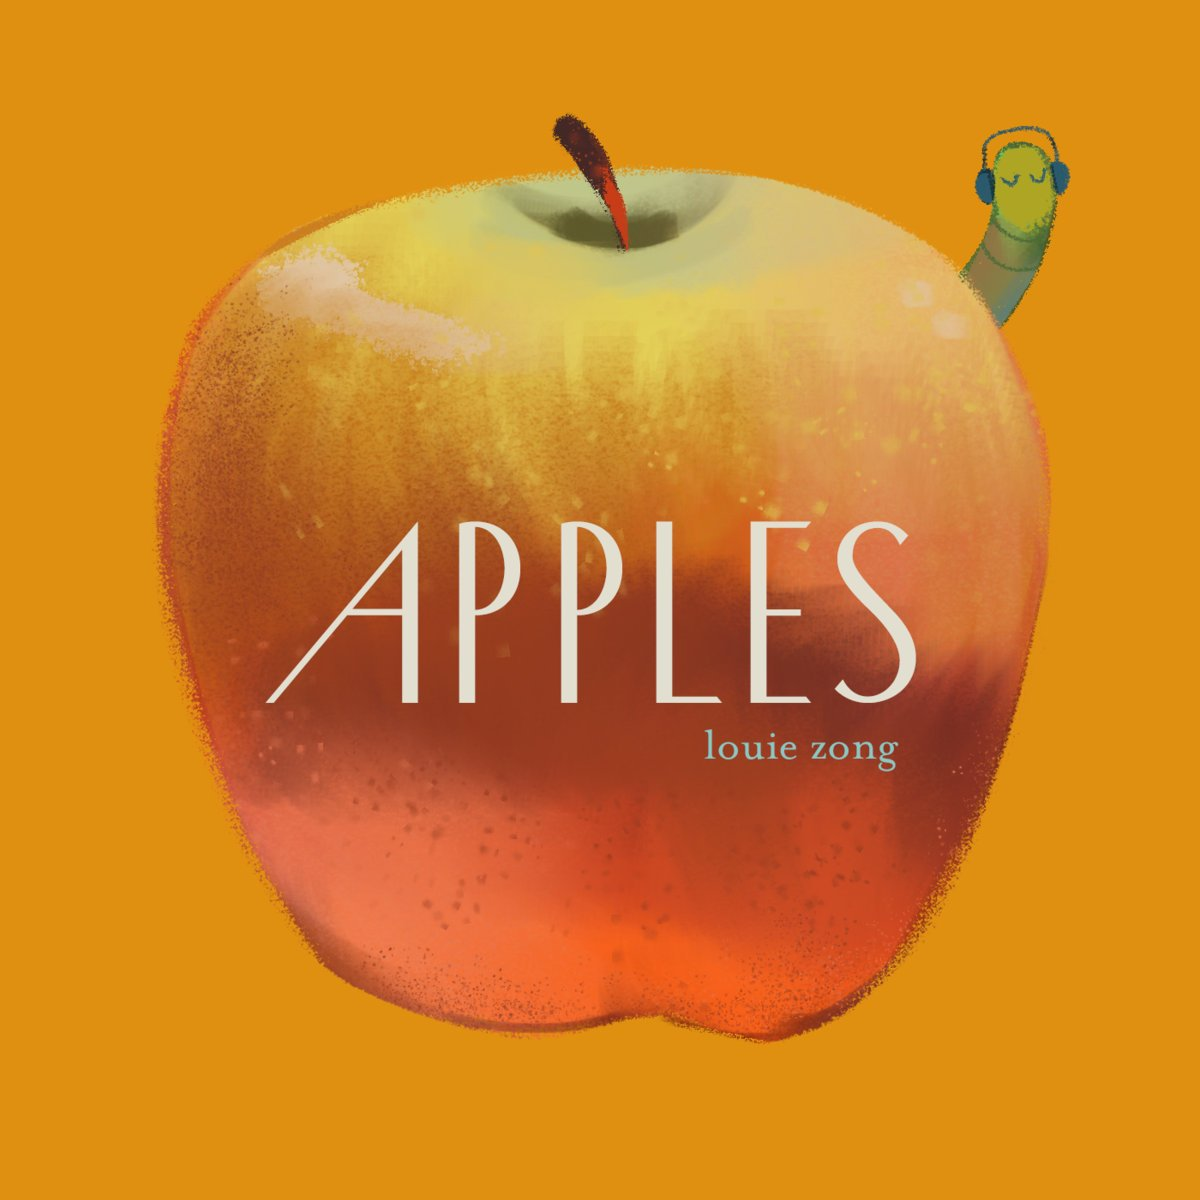 APPLES  a new lil album folky jazz for apple heads   https:// louiezong.bandcamp.com/album/apples     <br>http://pic.twitter.com/MlGhSlC1E3